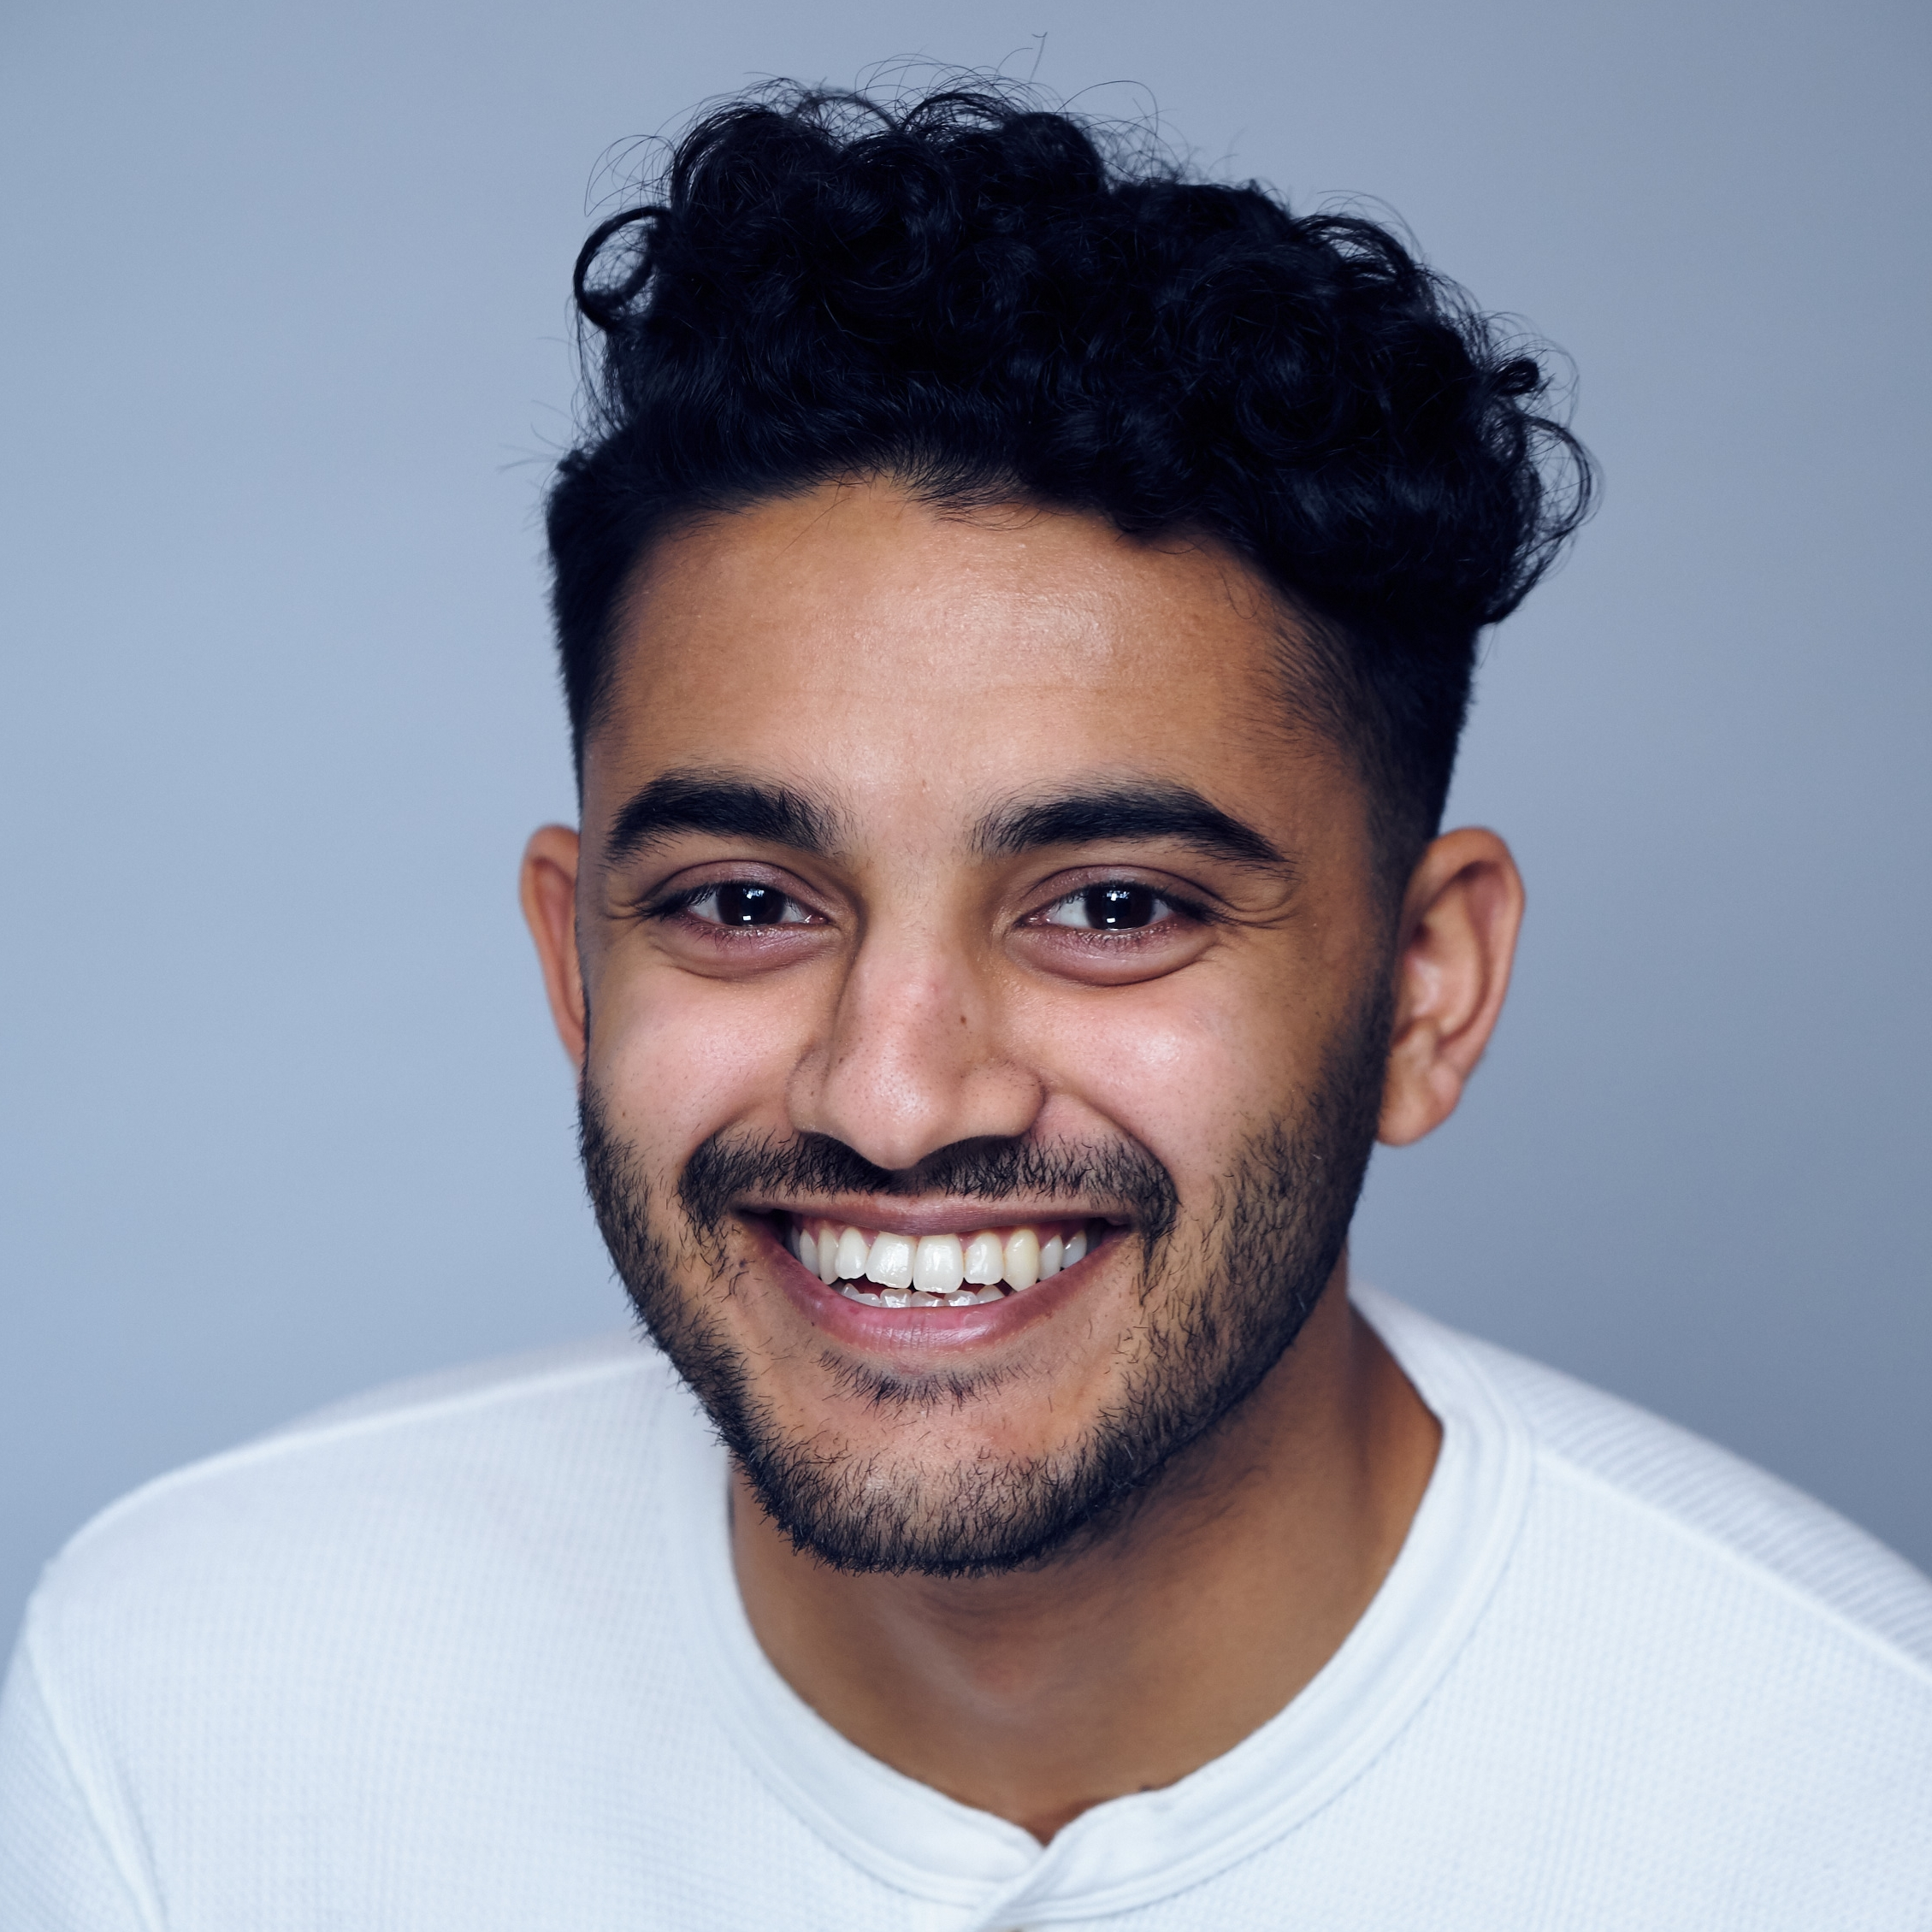 Ravi parekh - Investment AssociatePreviously Assistant Manager at Deloitte. 3 years' experience in investment management and private equity. First Class BSc Mathematics from University College London.